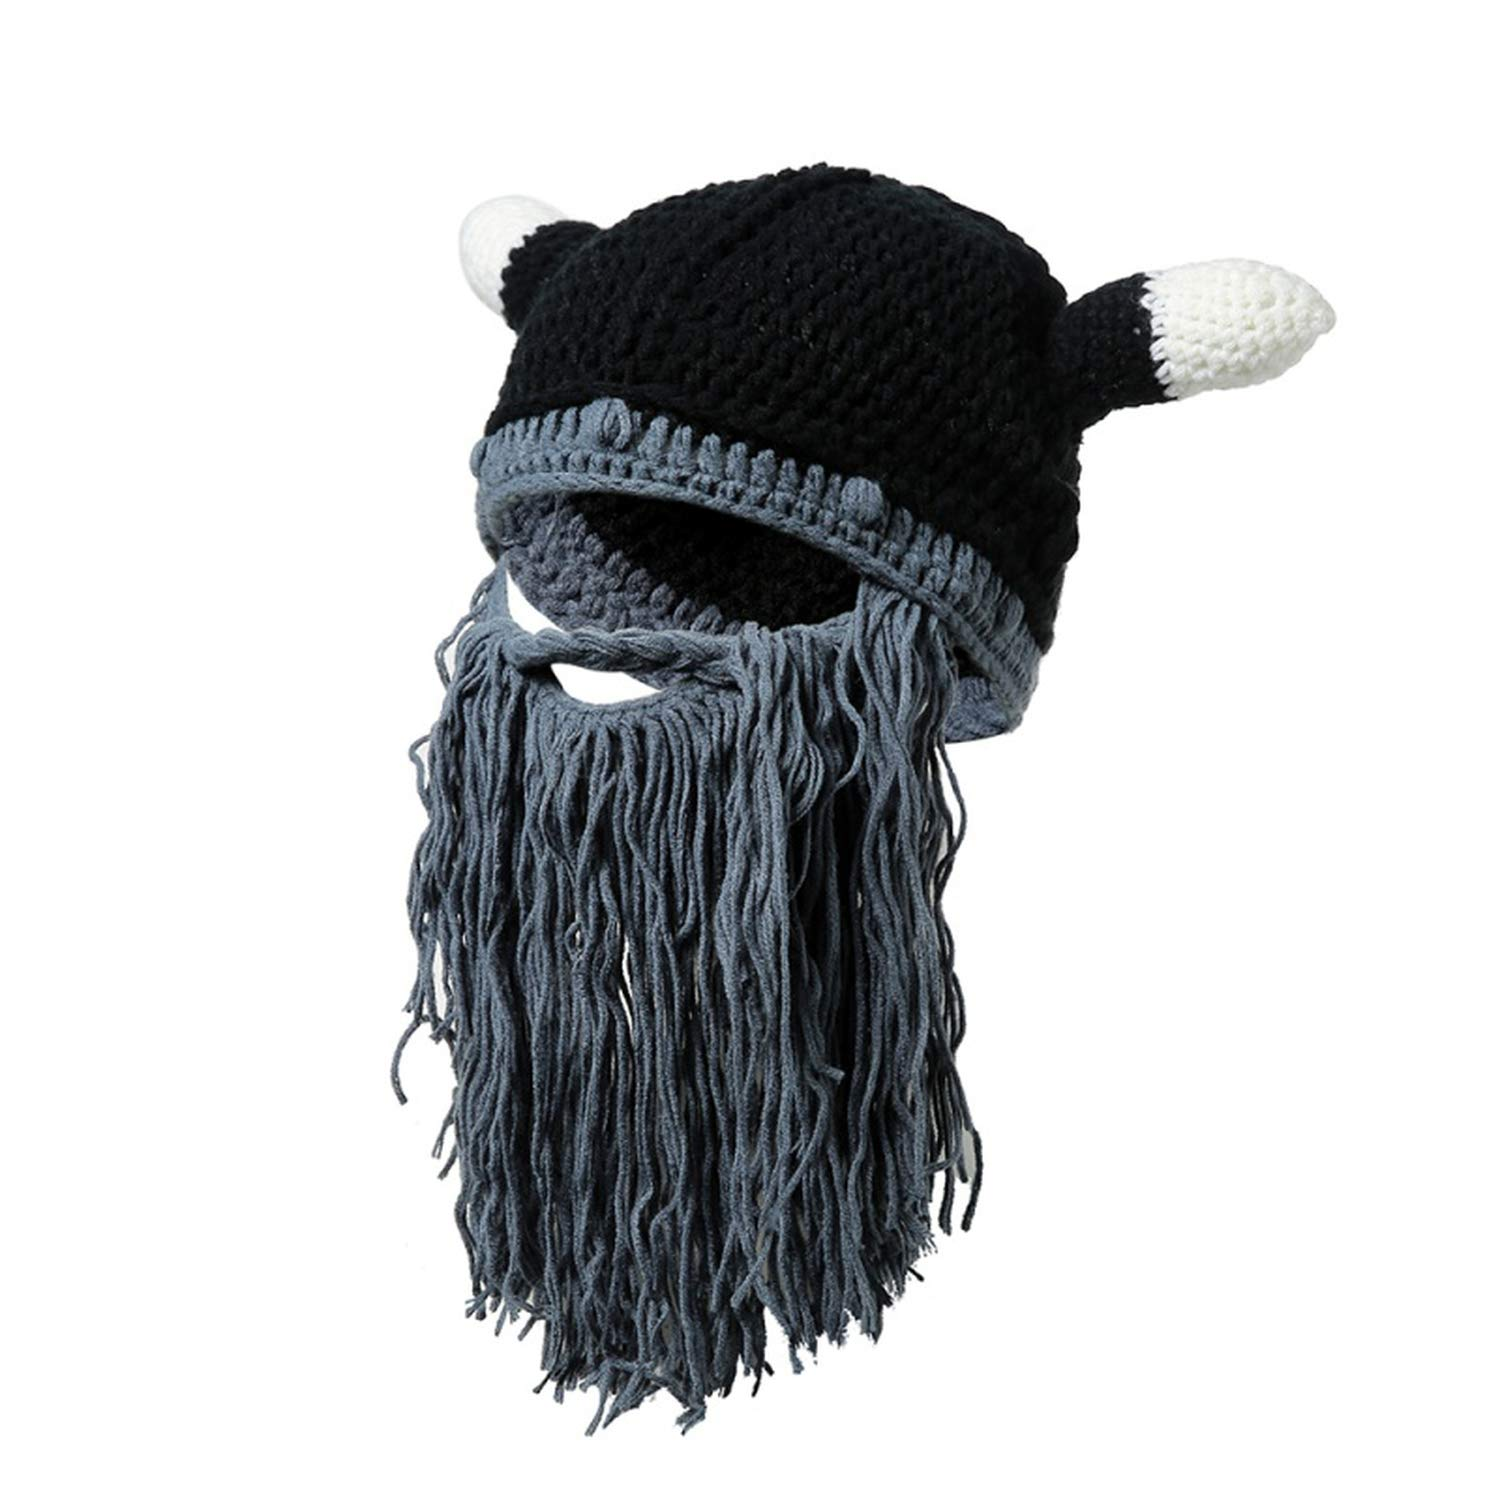 Men Barbarian Vagabond Viking Beanie Beard Horn Hats Handmade Funny Gag Halloween Cap Winter Warm Gifts